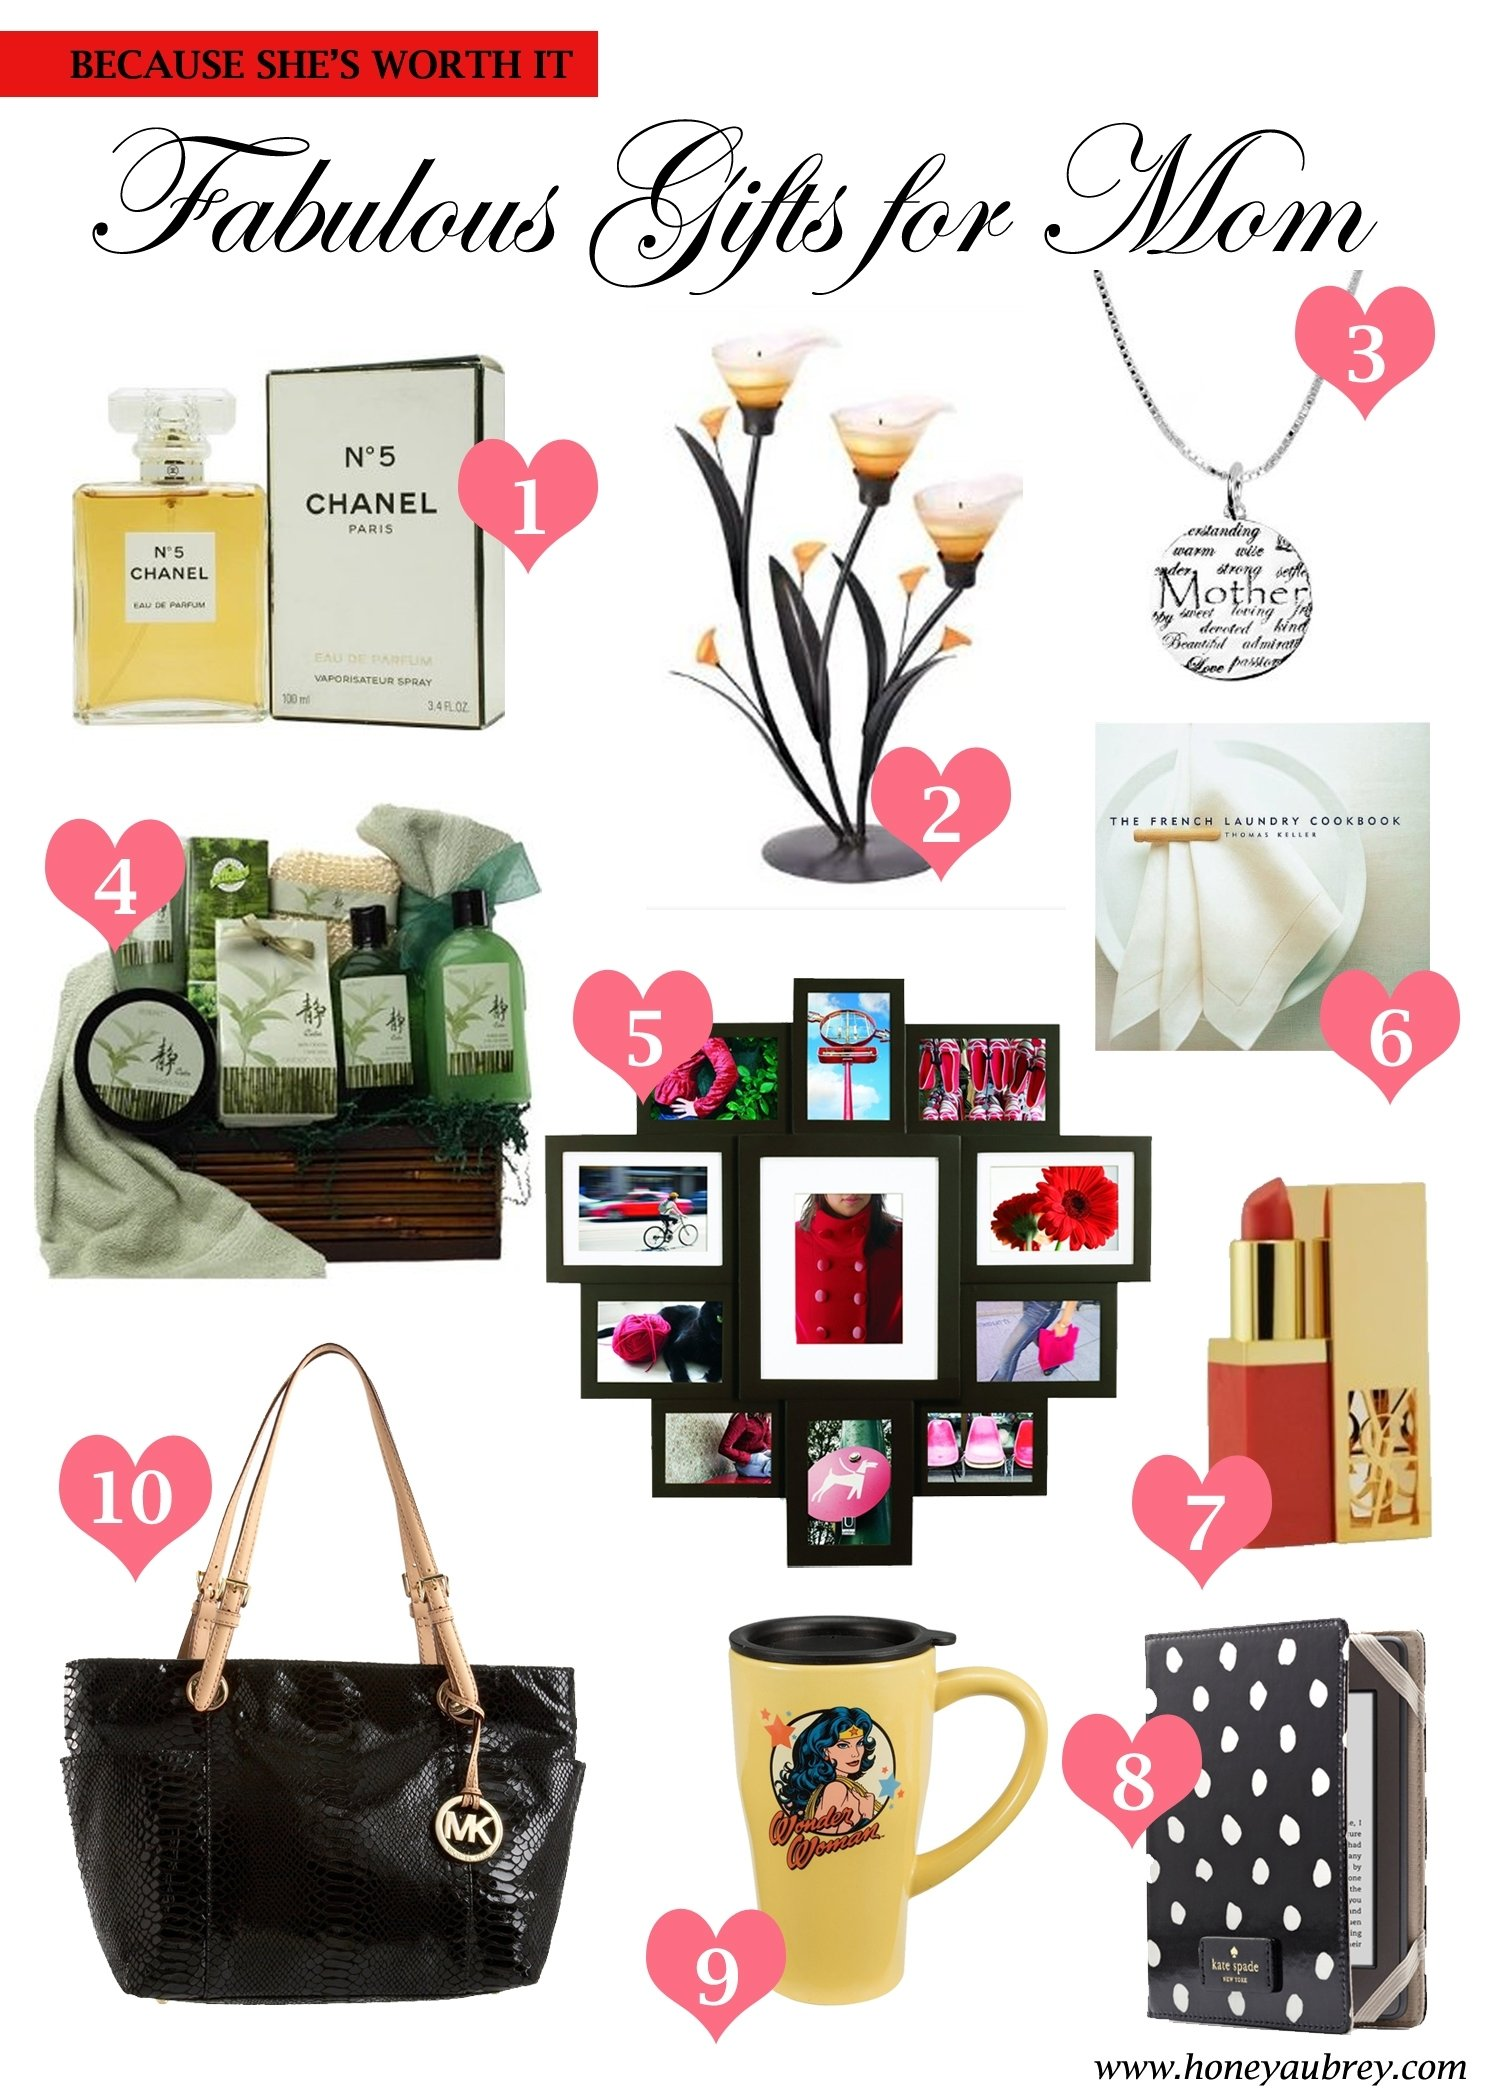 10 Attractive Ideas For Gifts For Mom mothers day gift ideas love honey 2020